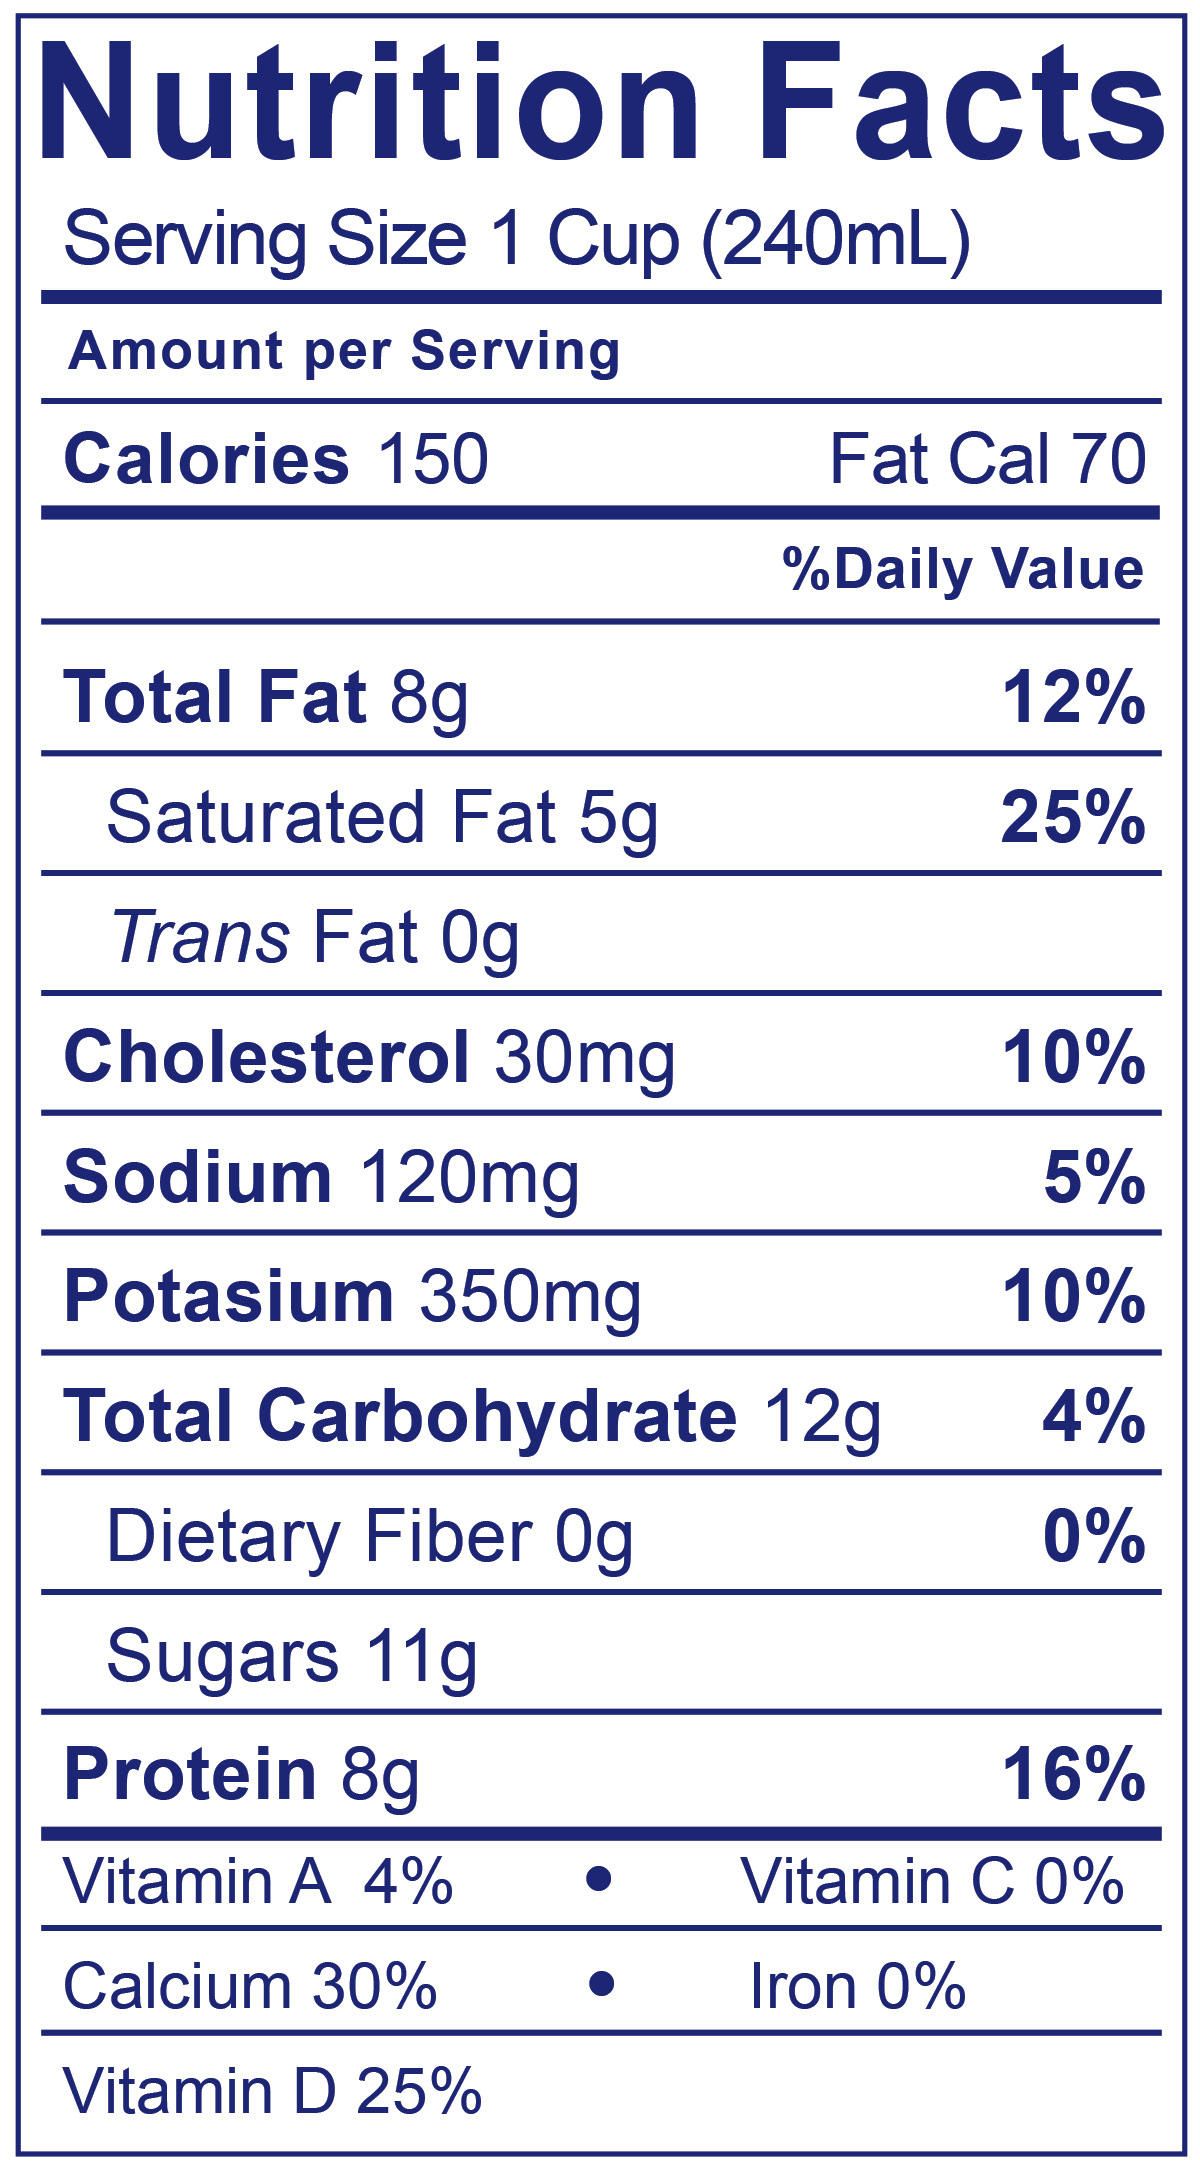 Whole Milk - Nutrition Facts